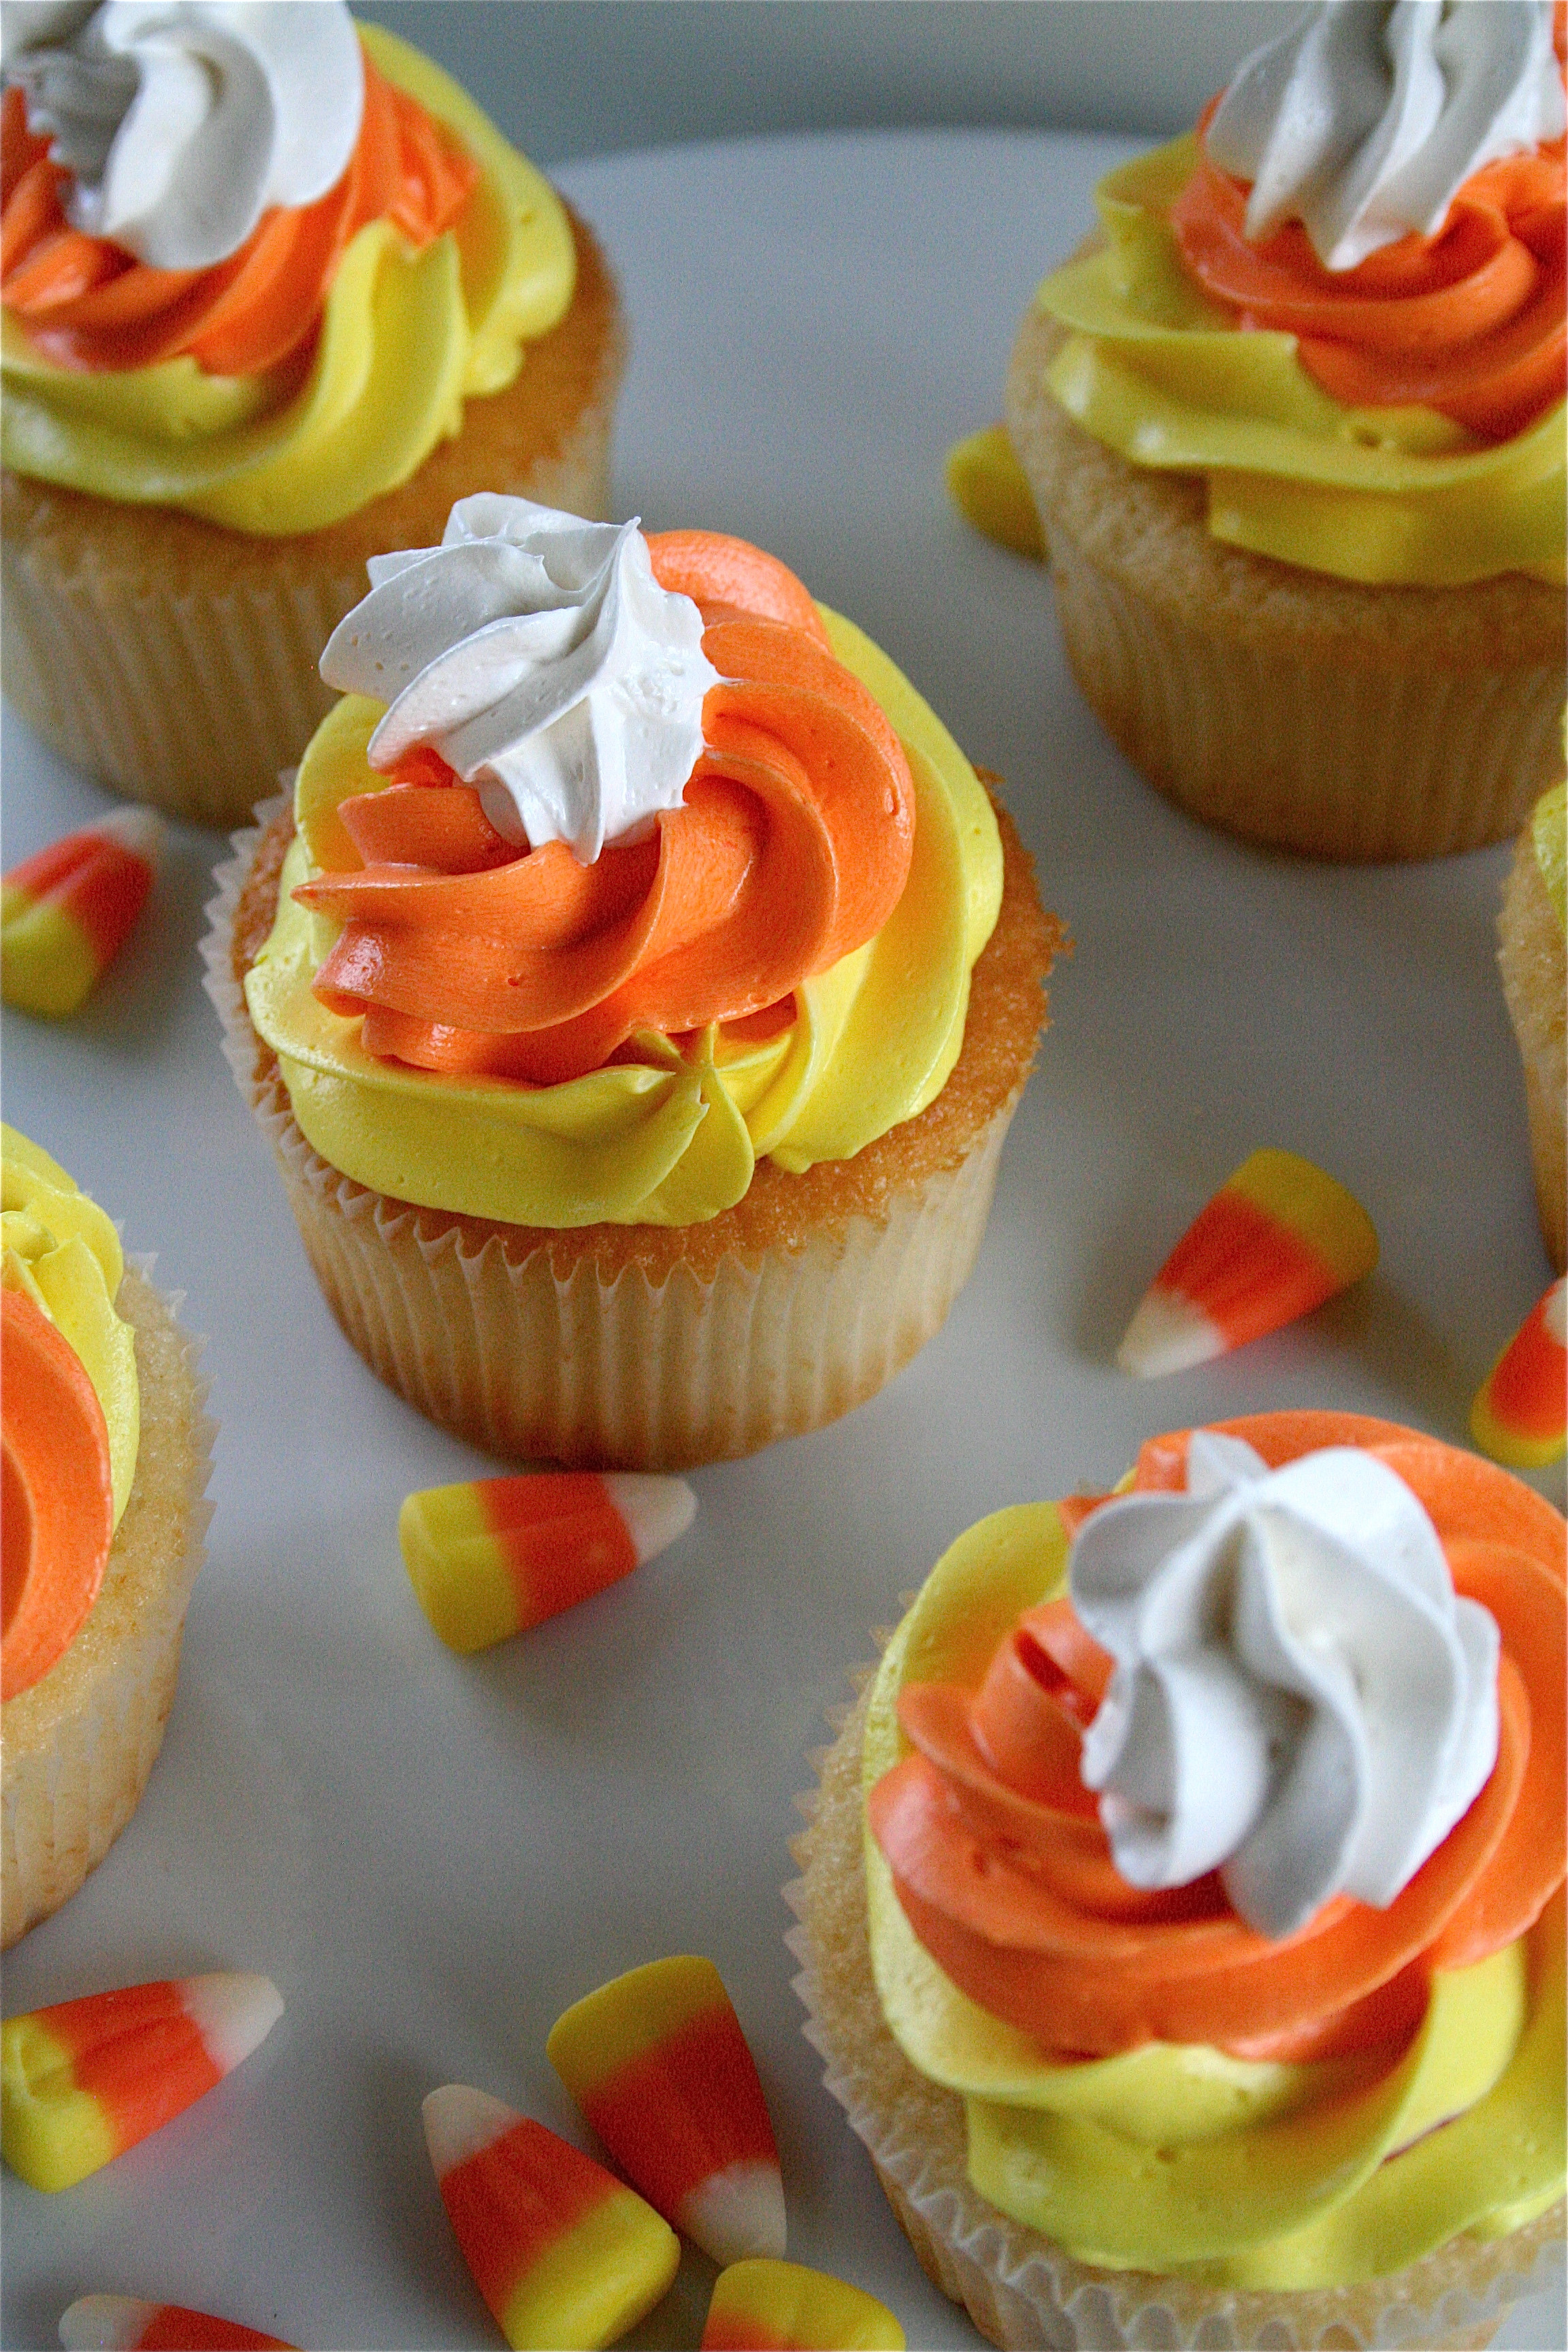 Picture Of Halloween Cupcakes  28 Cute Halloween Cupcakes Easy Recipes for Halloween